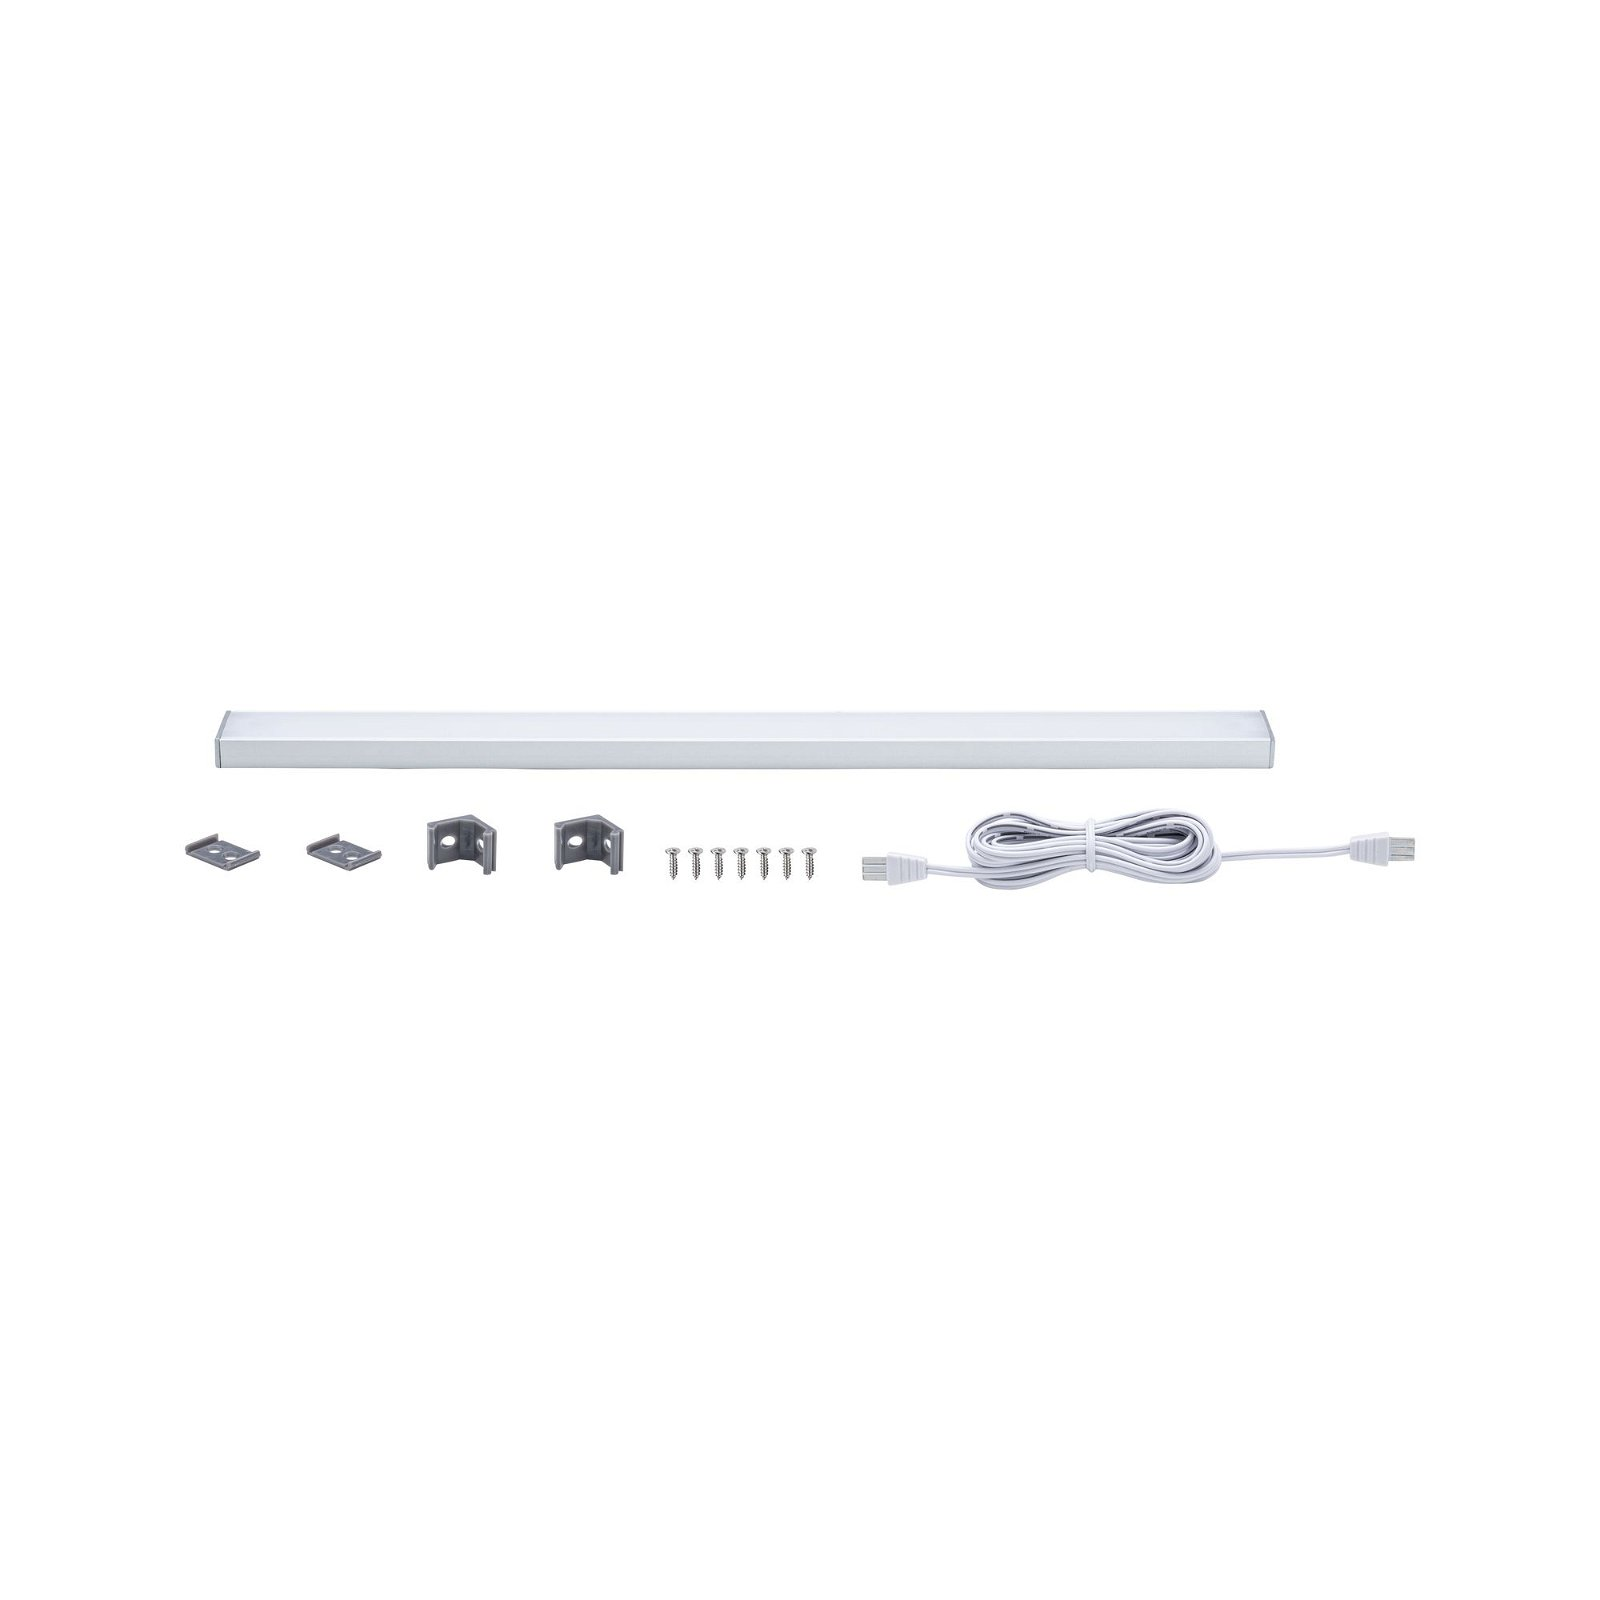 Clever Connect LED Spot Barre Tunable White 3,5W Chrom matt